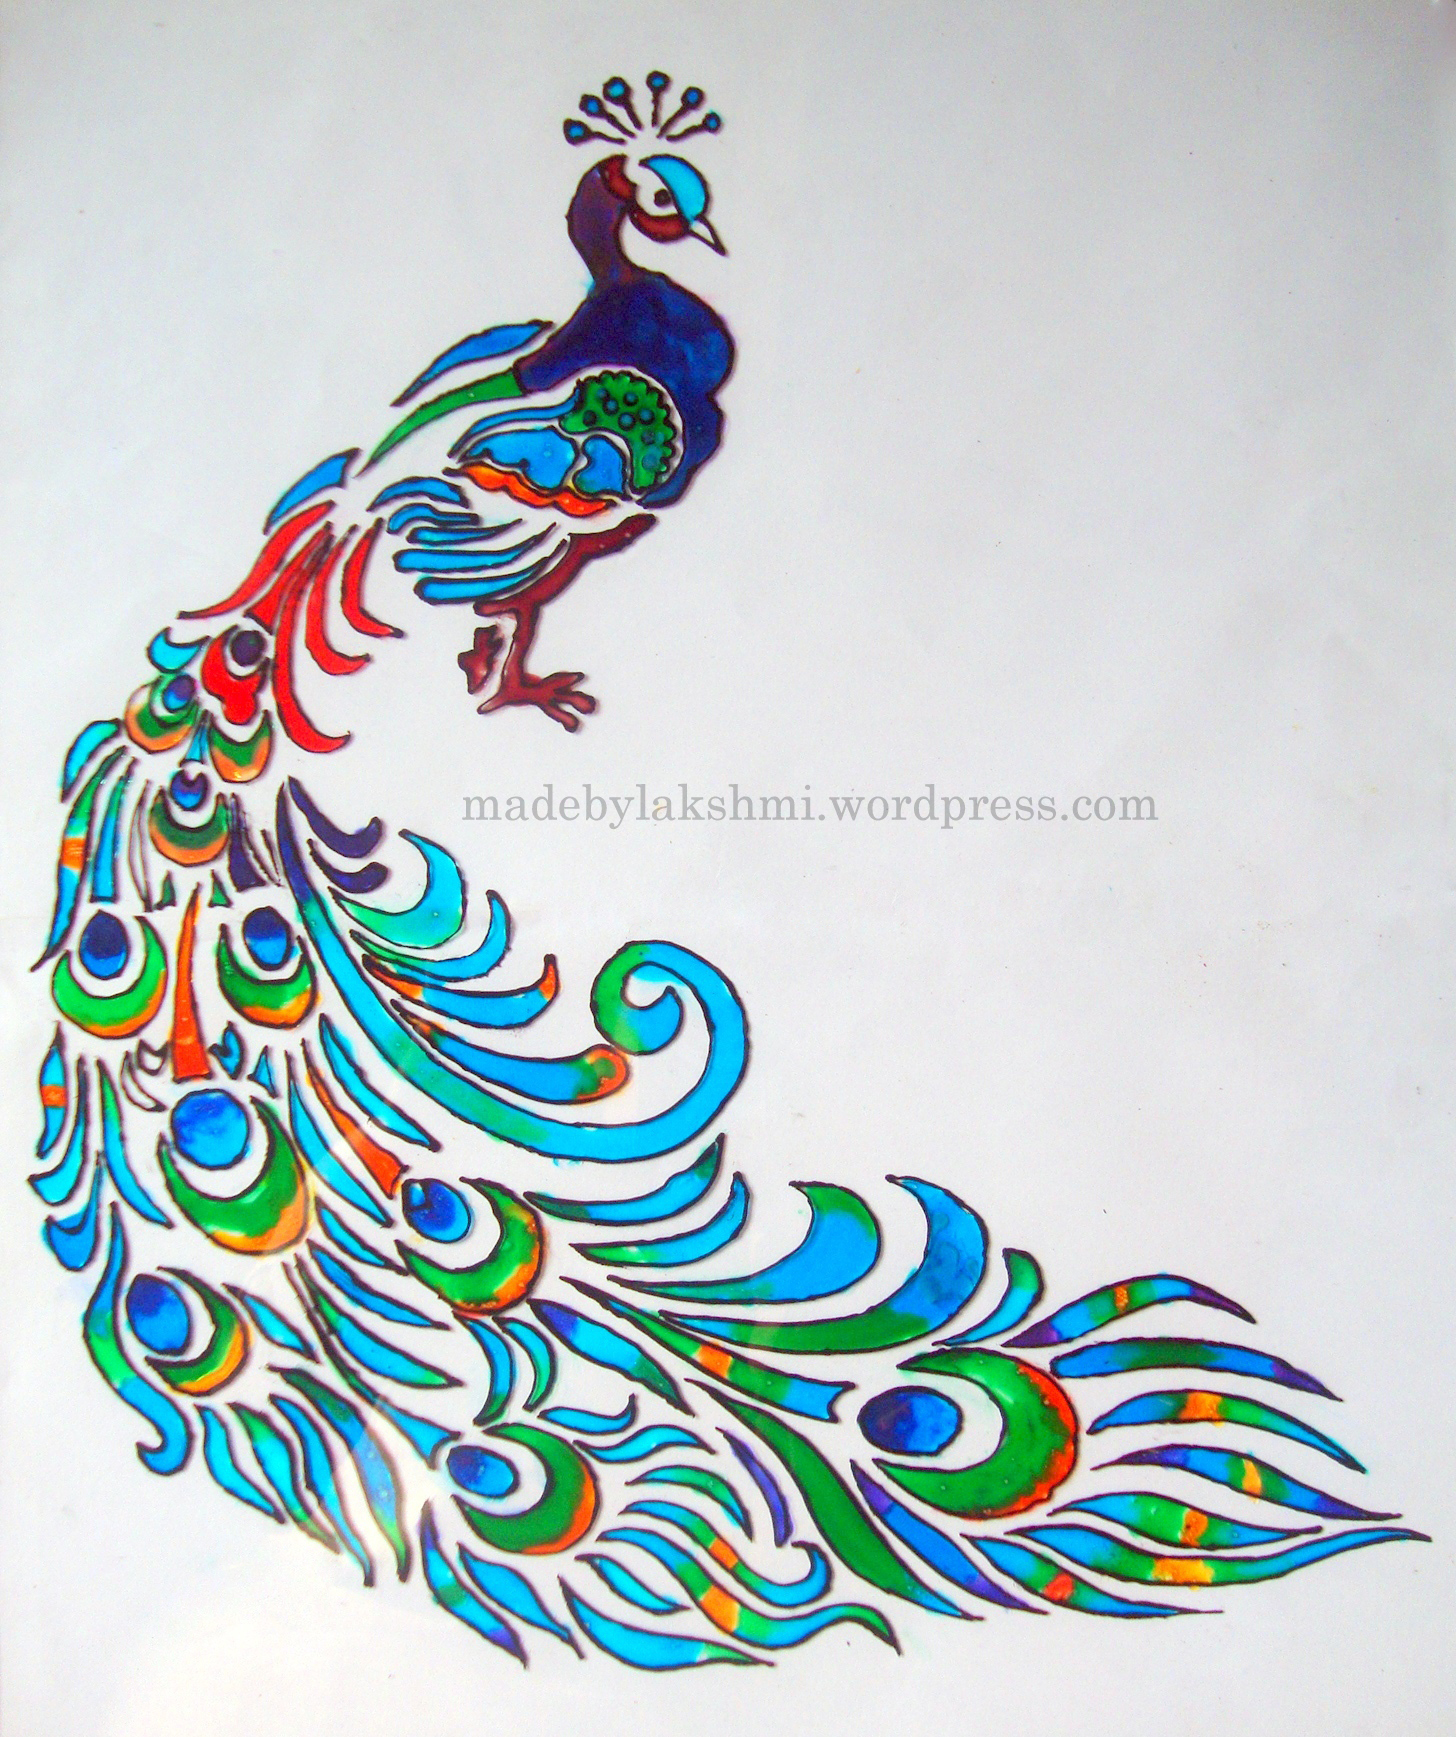 Glass painting tutorial m de by lakshmi for Simple glass painting pictures